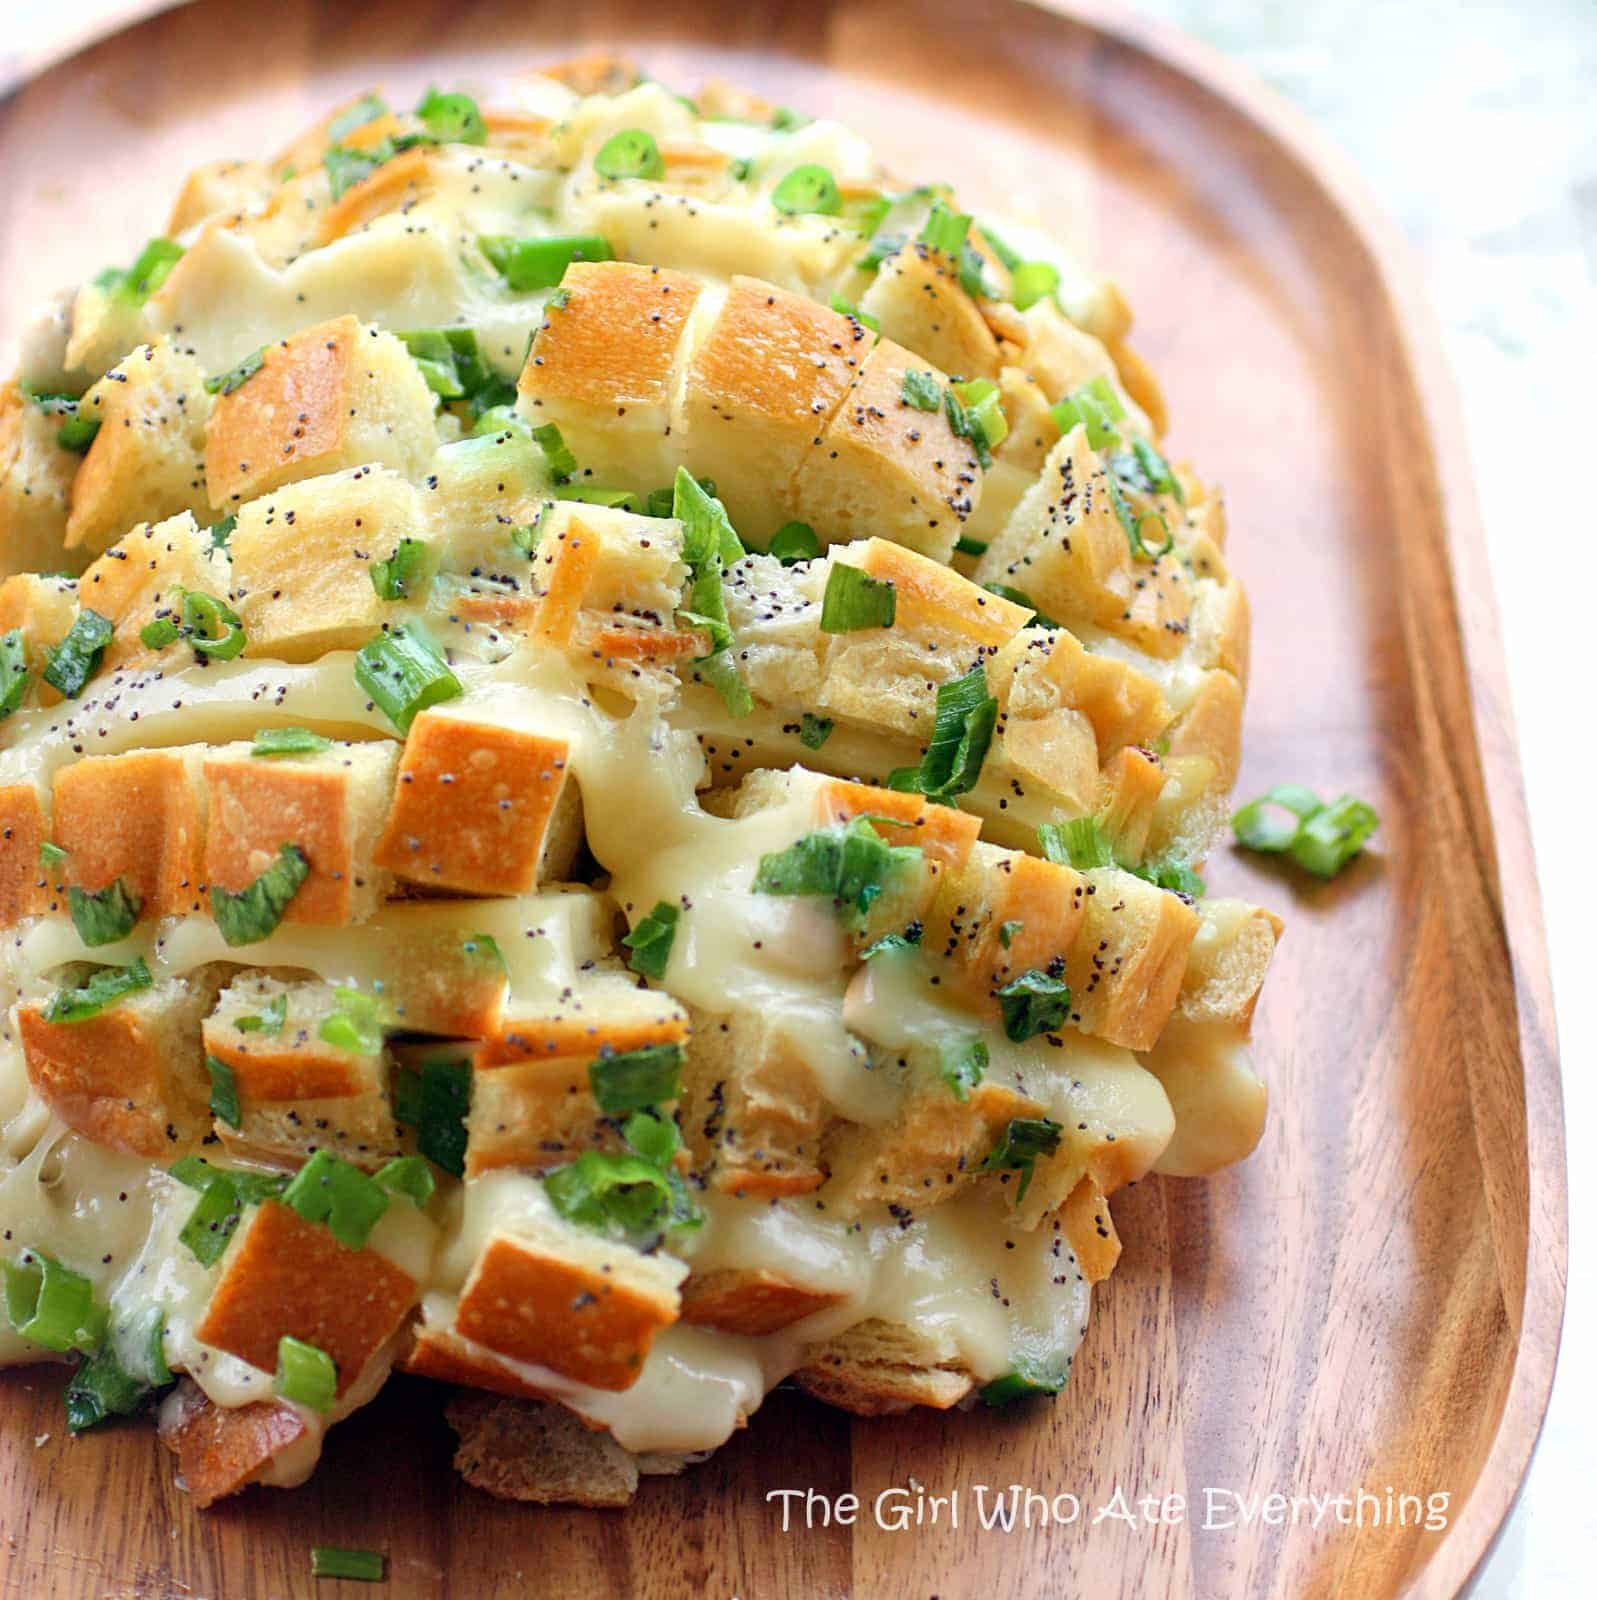 Onion Bread is sourdough bread stuffed with cheese, onions, and topped ...